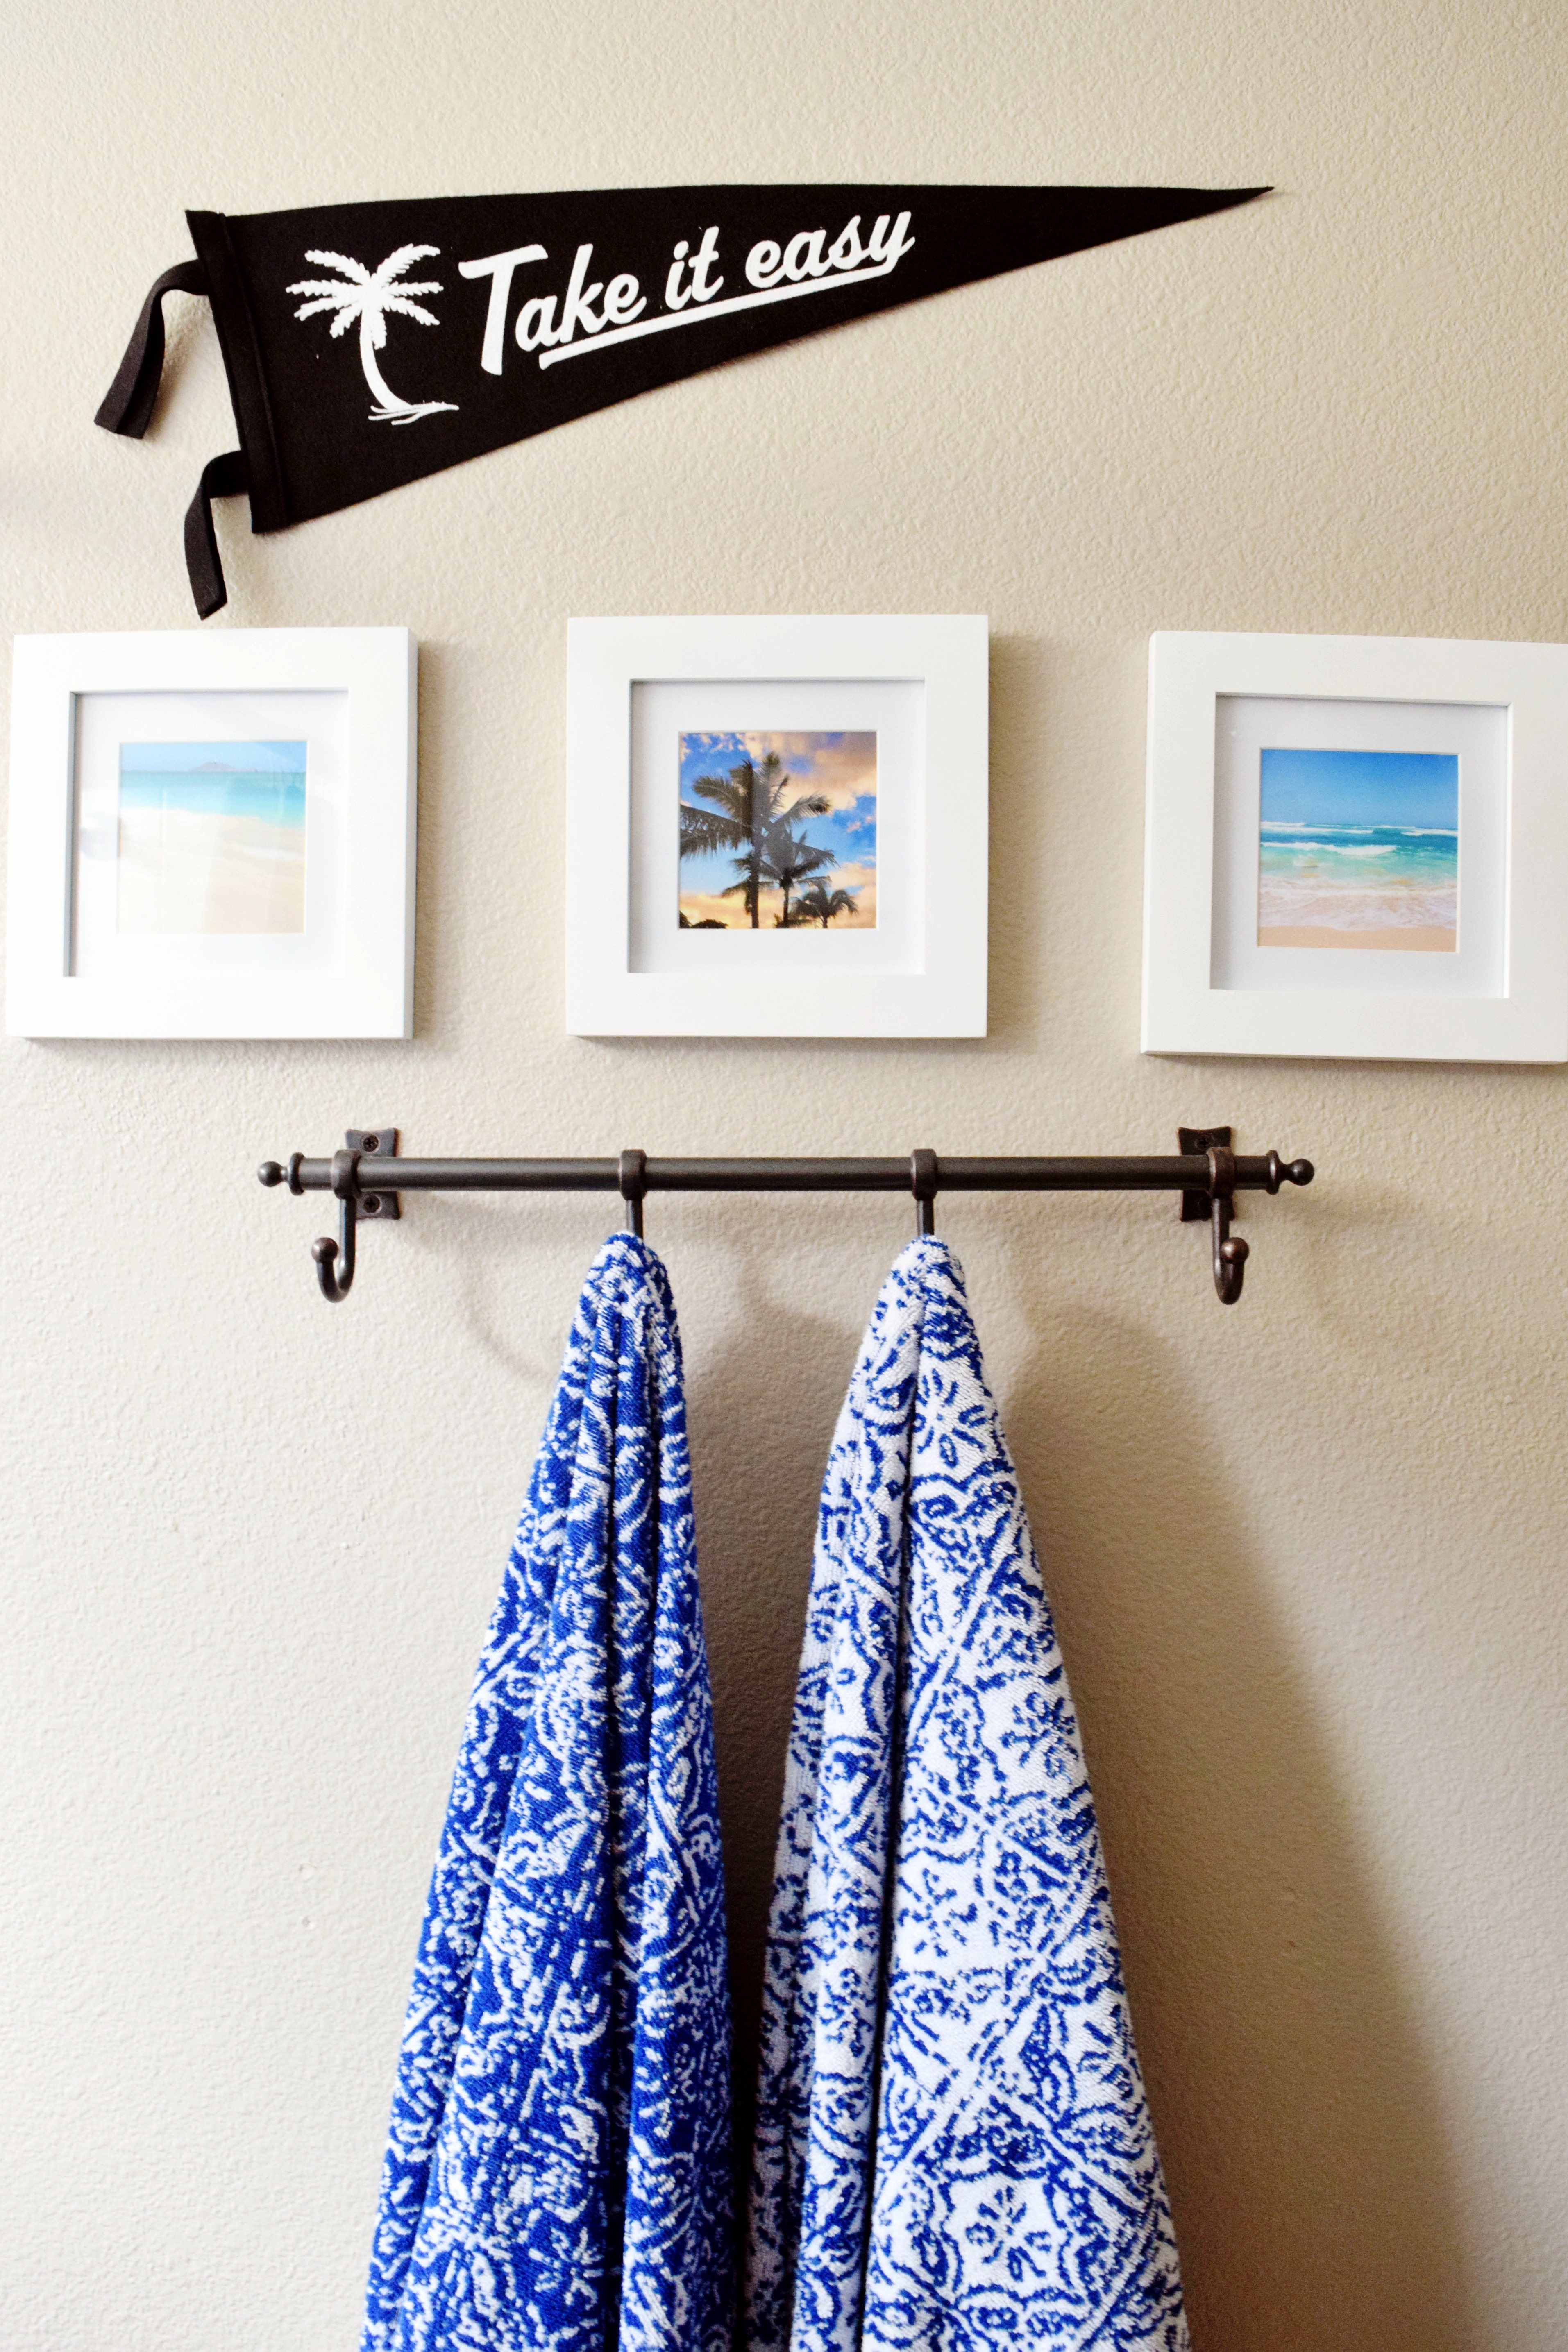 Bathroom Details - Take It Easy Pennant - Instagram Frames - Blue and White Towels - Hawaiian Home Feature on Apartment Therapy - CommuniKait